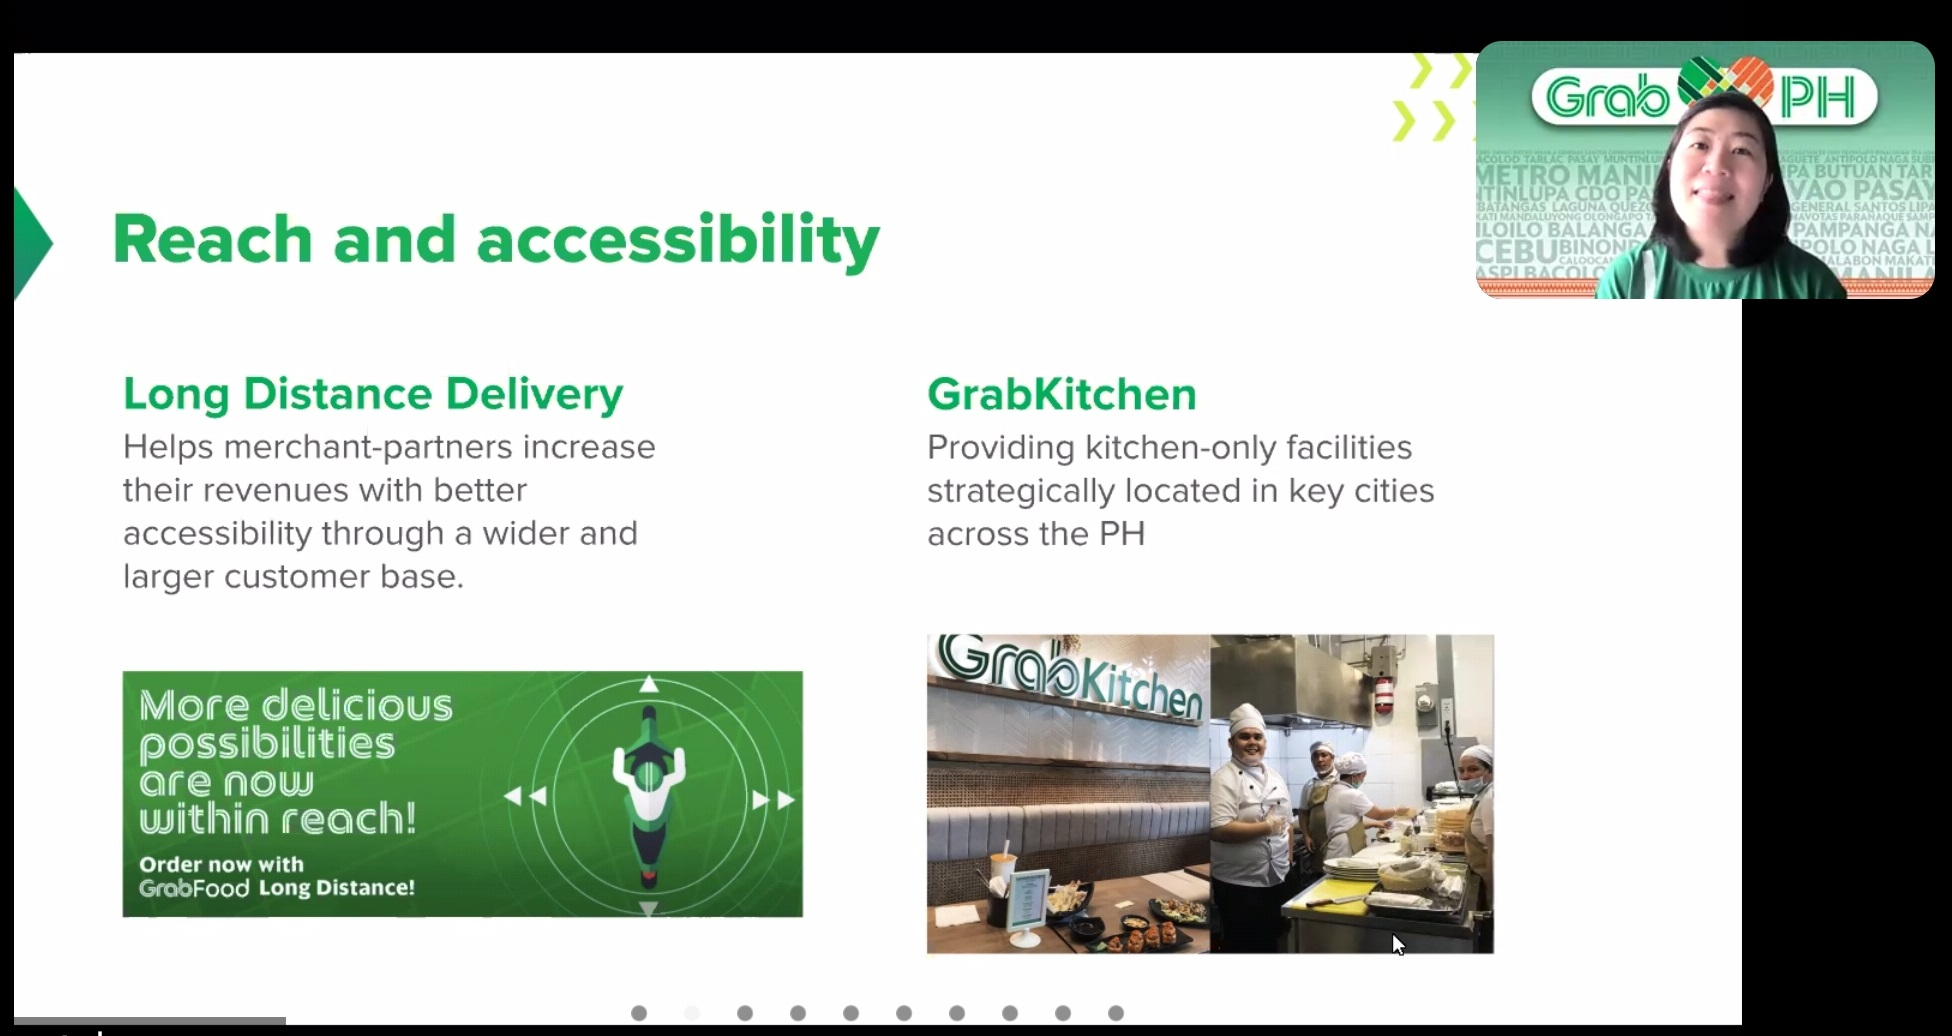 Grab Long Distance Delivery and GrabKitchen